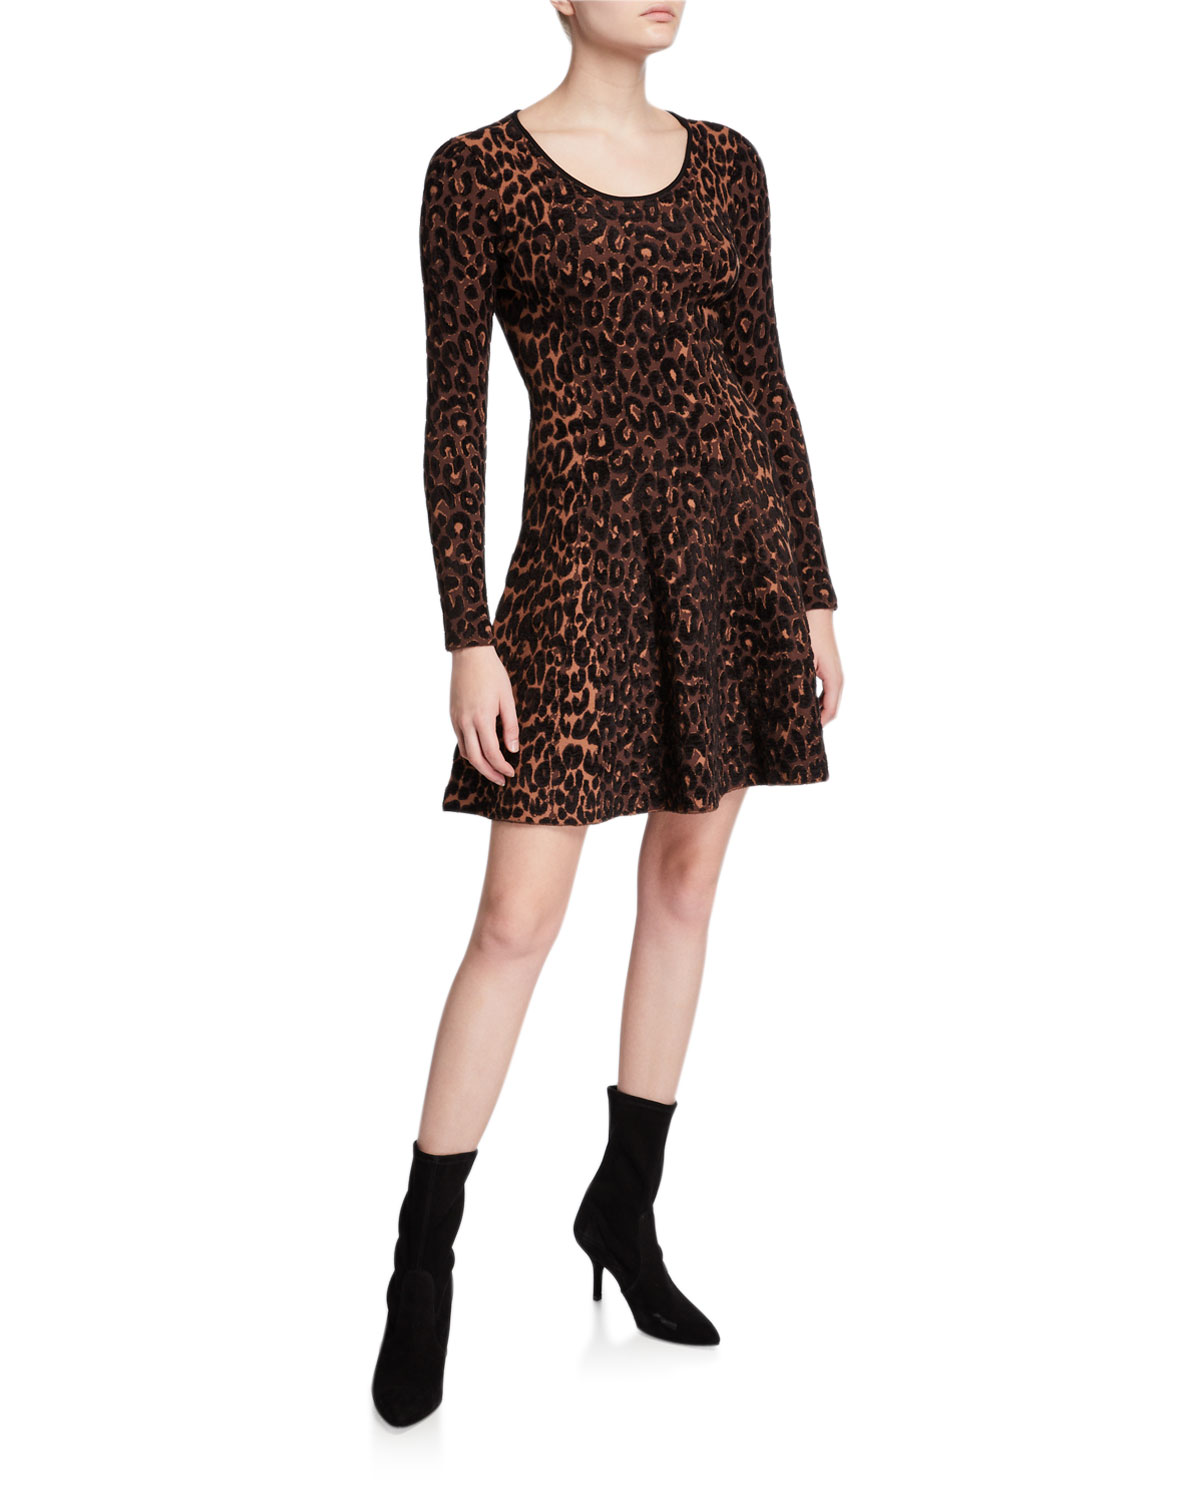 Milly Dresses TEXTURED CHEETAH LONG-SLEEVE FIT-&-FLARE DRESS